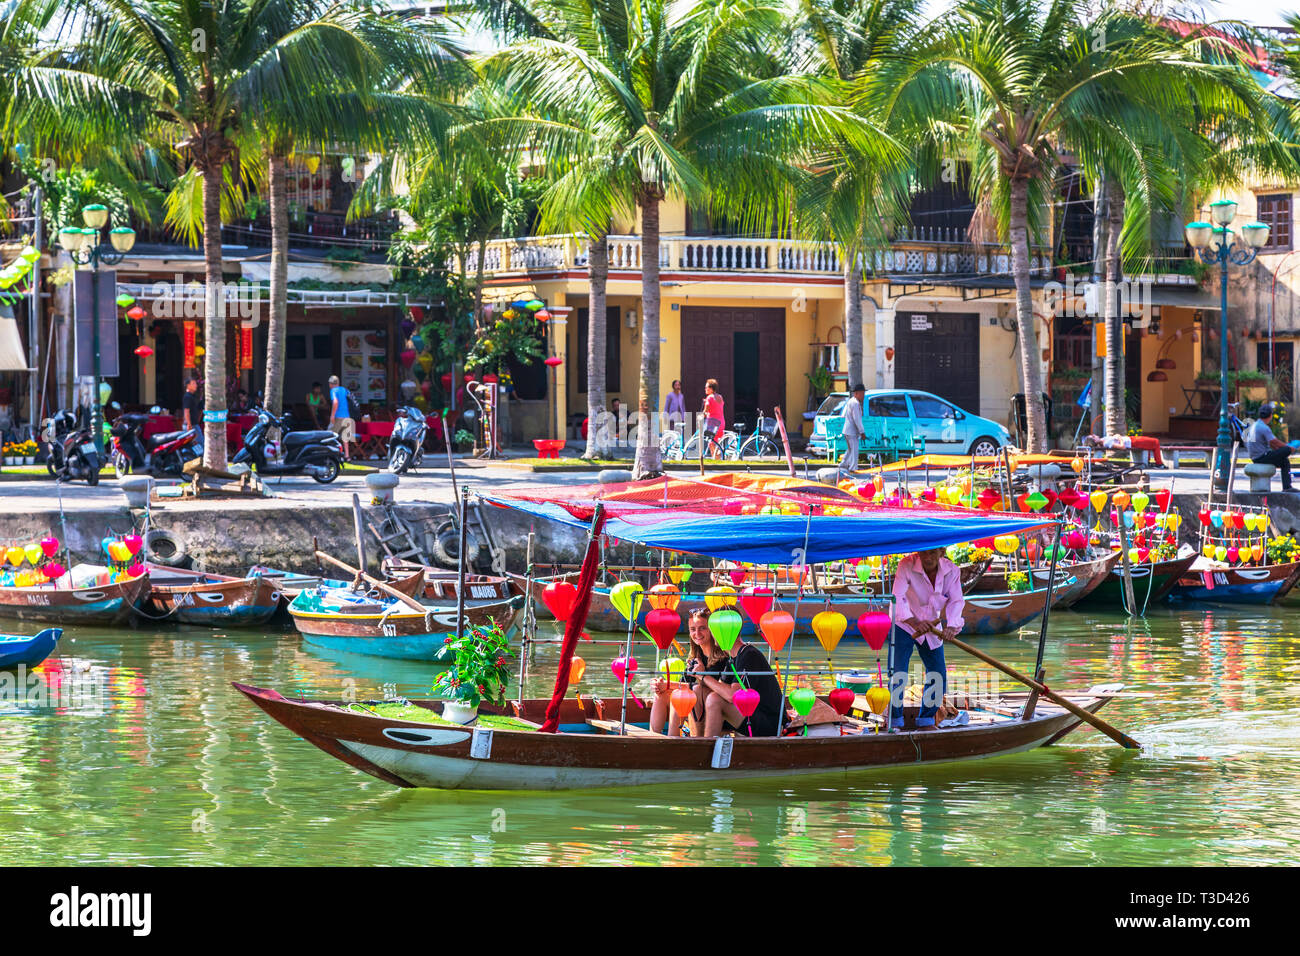 Tourists being taken for a sail on a lantern boat along the River Son Thu Bon, at Hoi An, Quang Nam Provence, Vietnam, Asia. Stock Photo